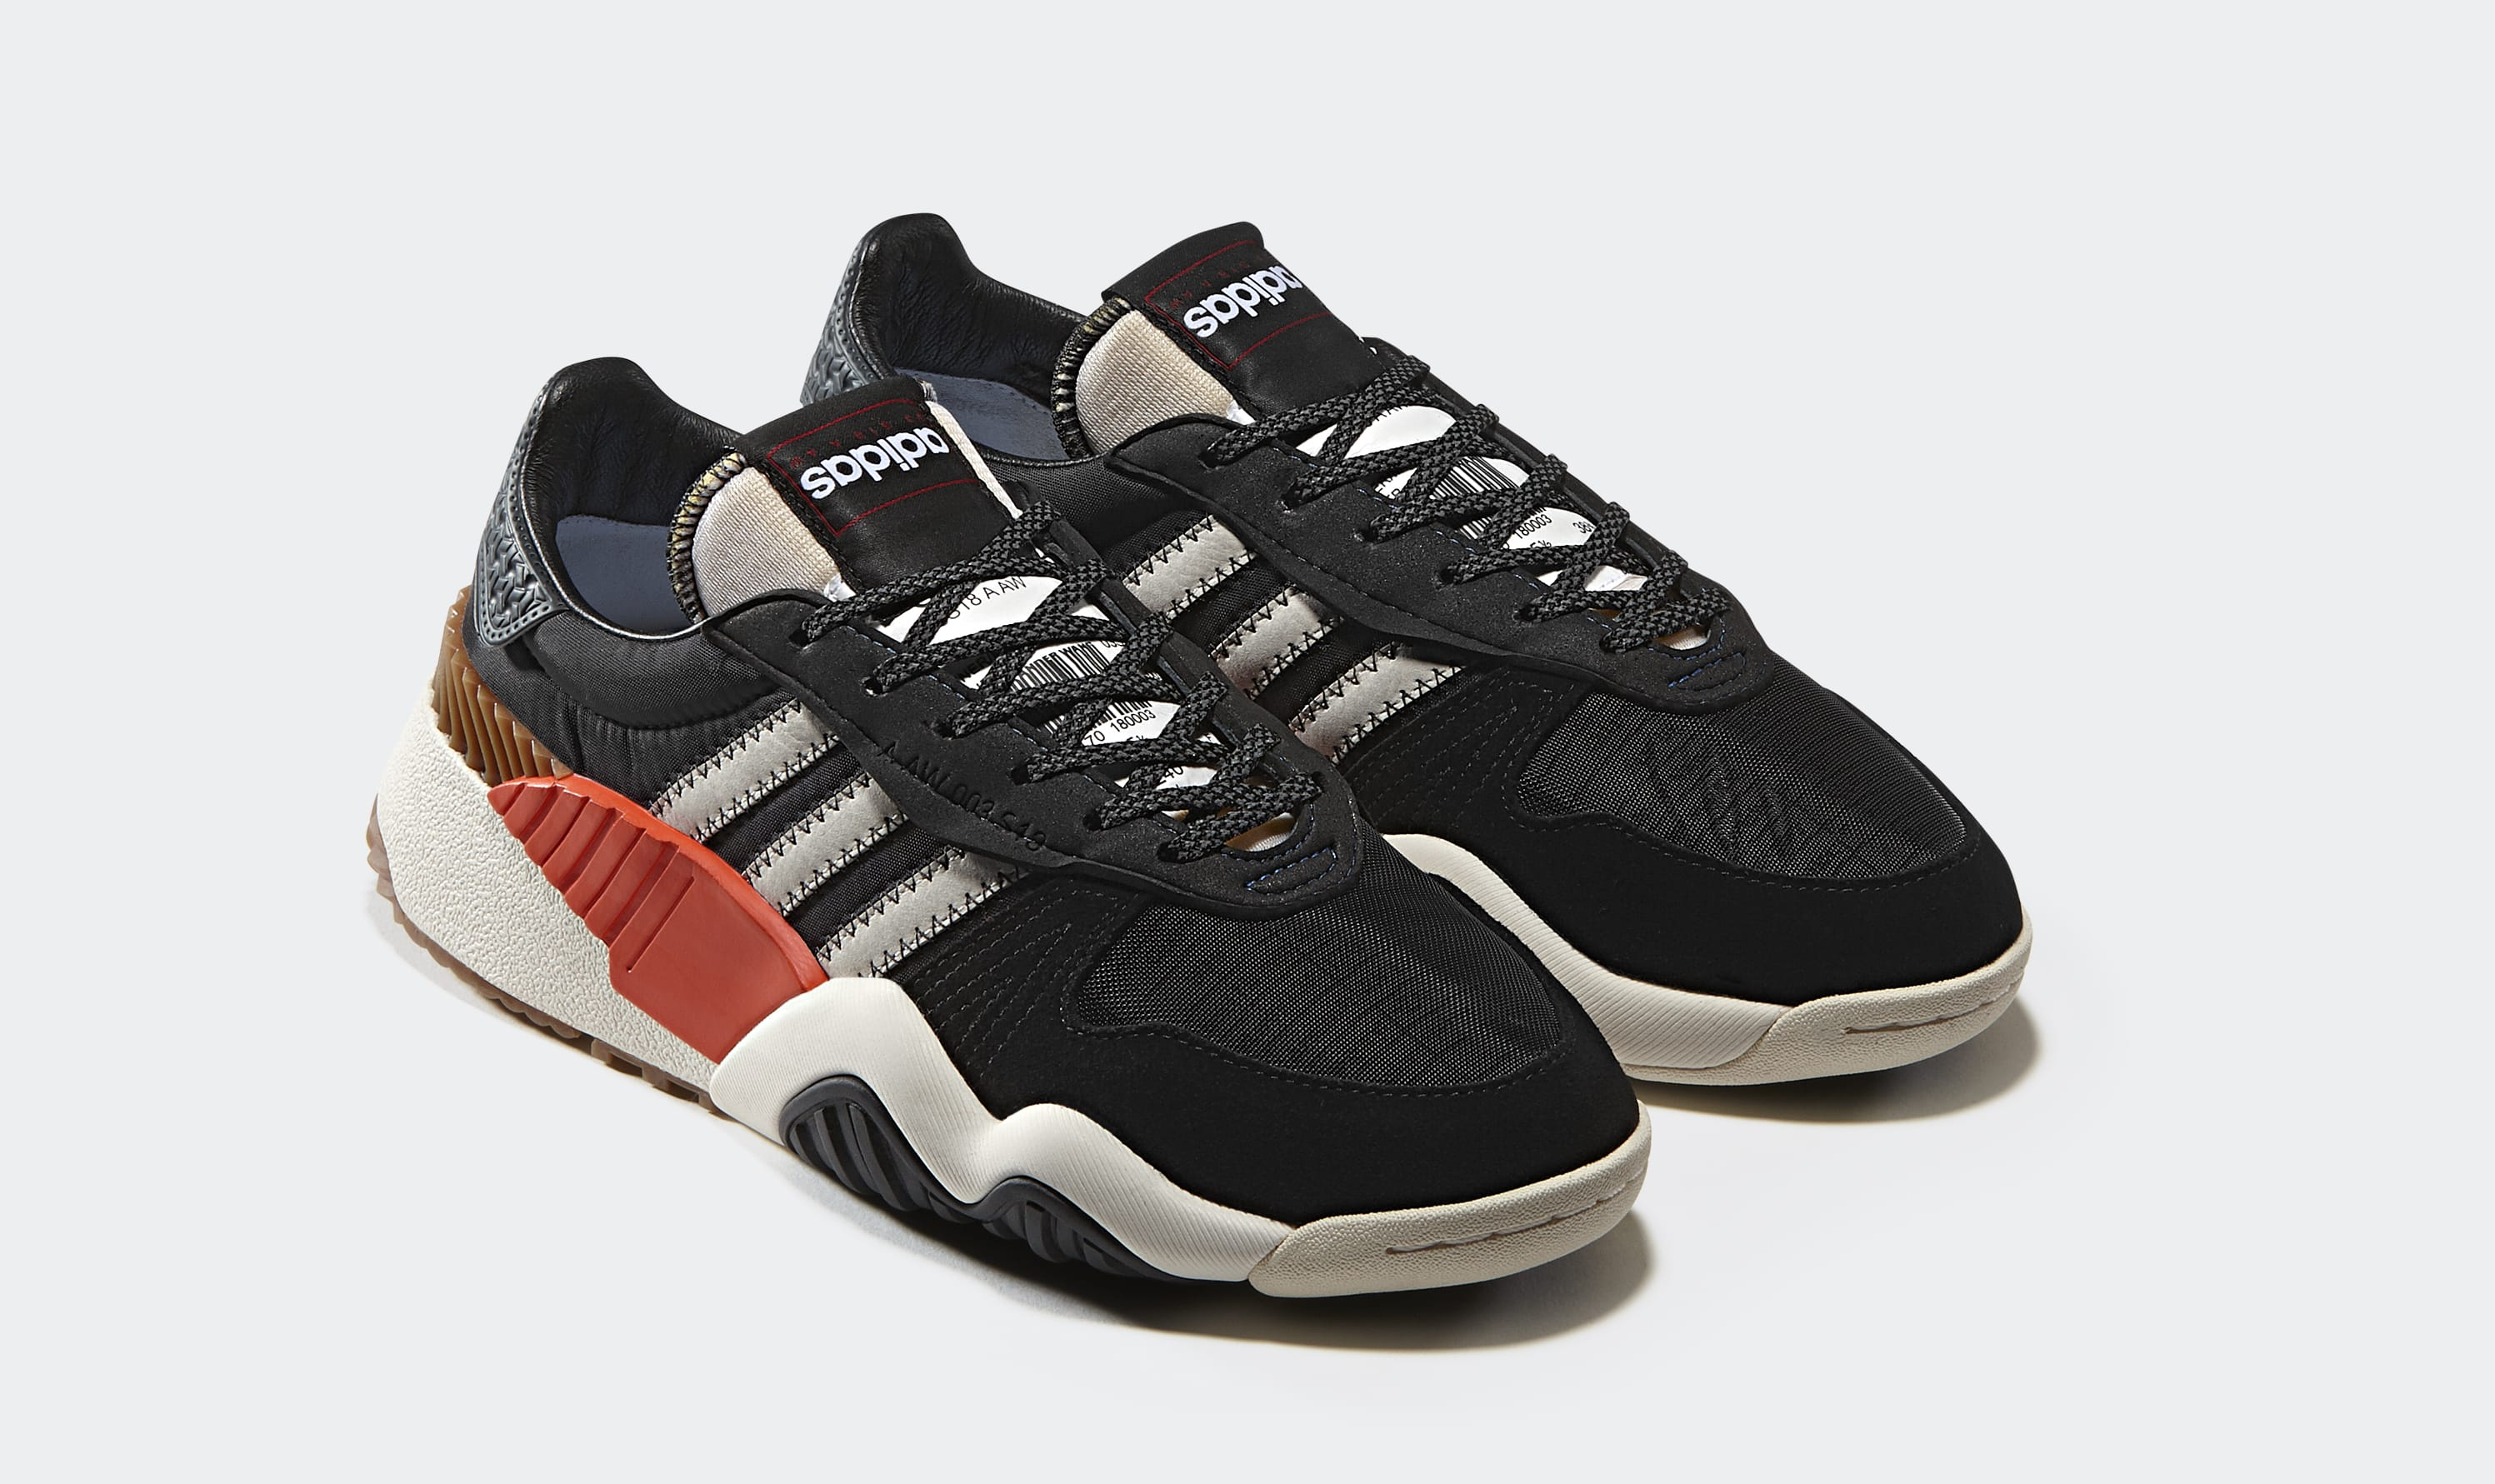 Alexander Wang x Adidas Turnout Trainer 'Core Black' AQ1237 (Pair)